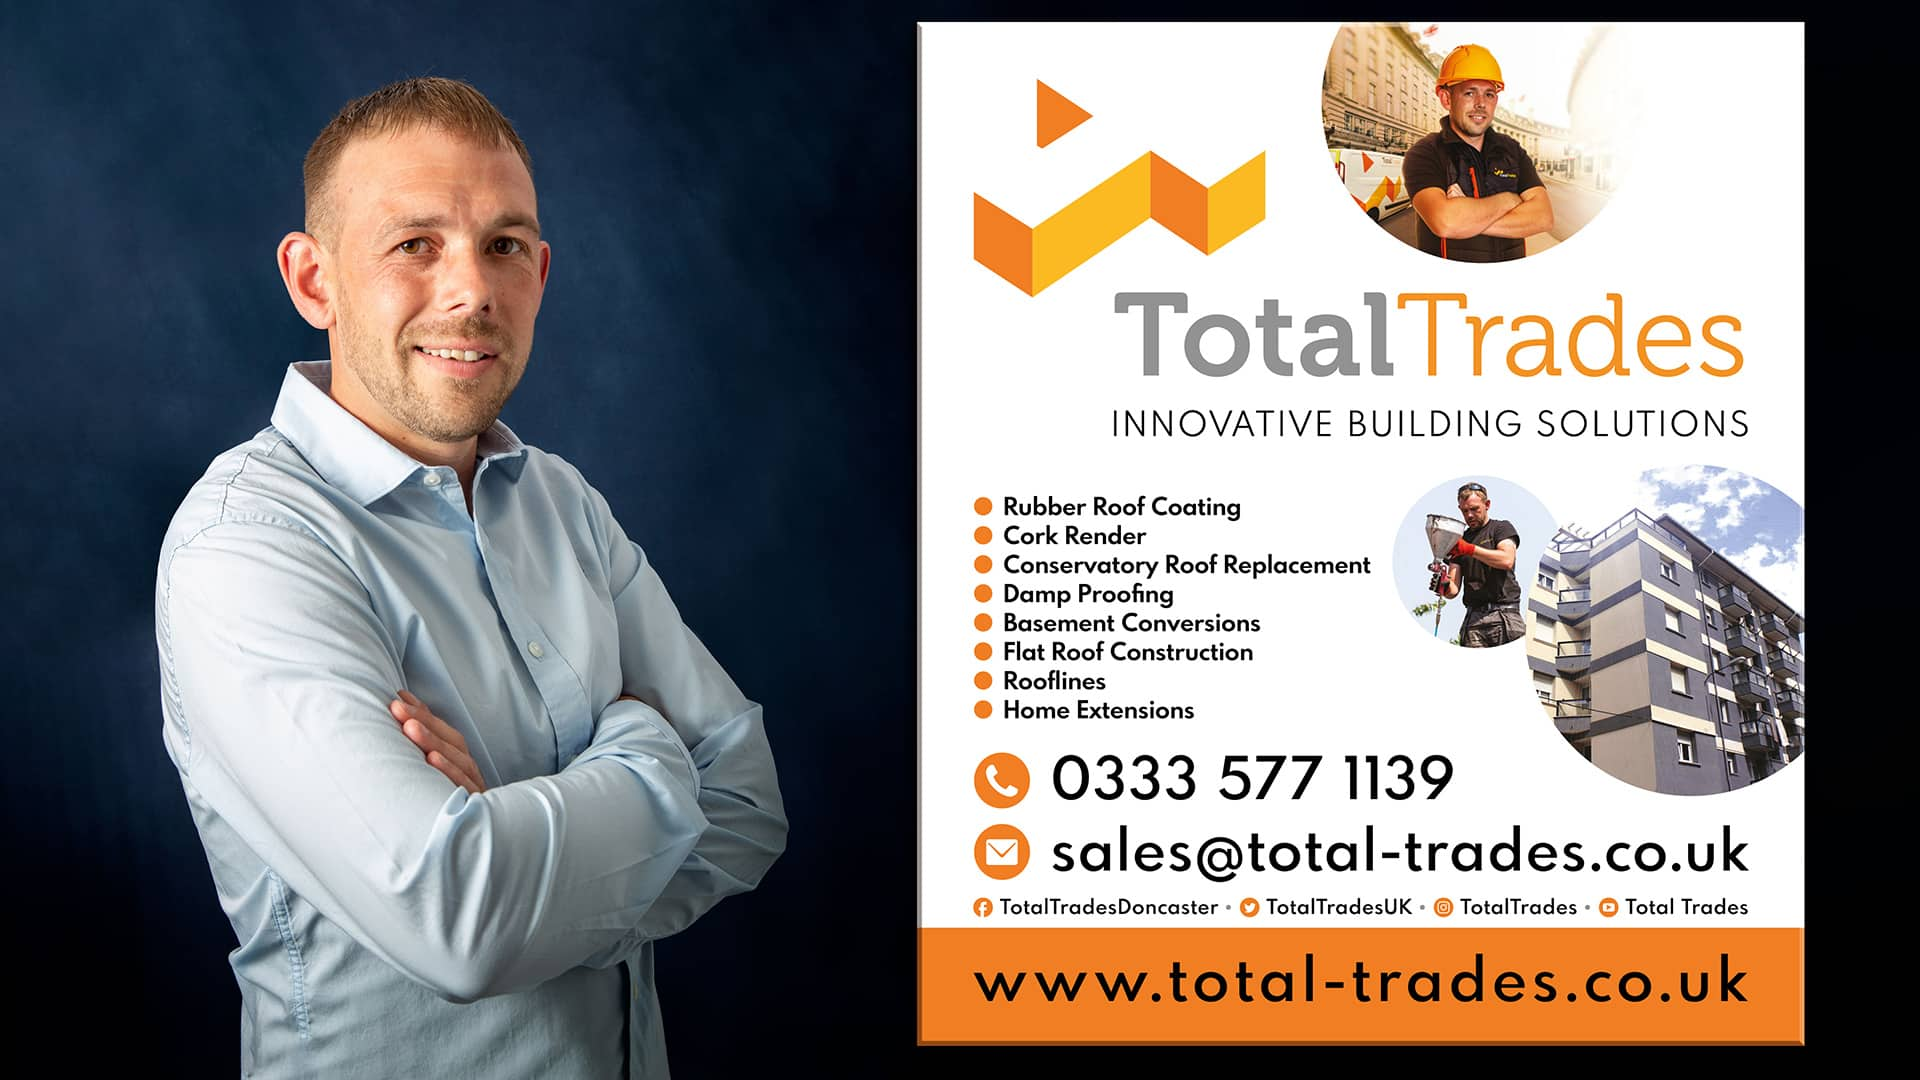 Total Trades Image 4